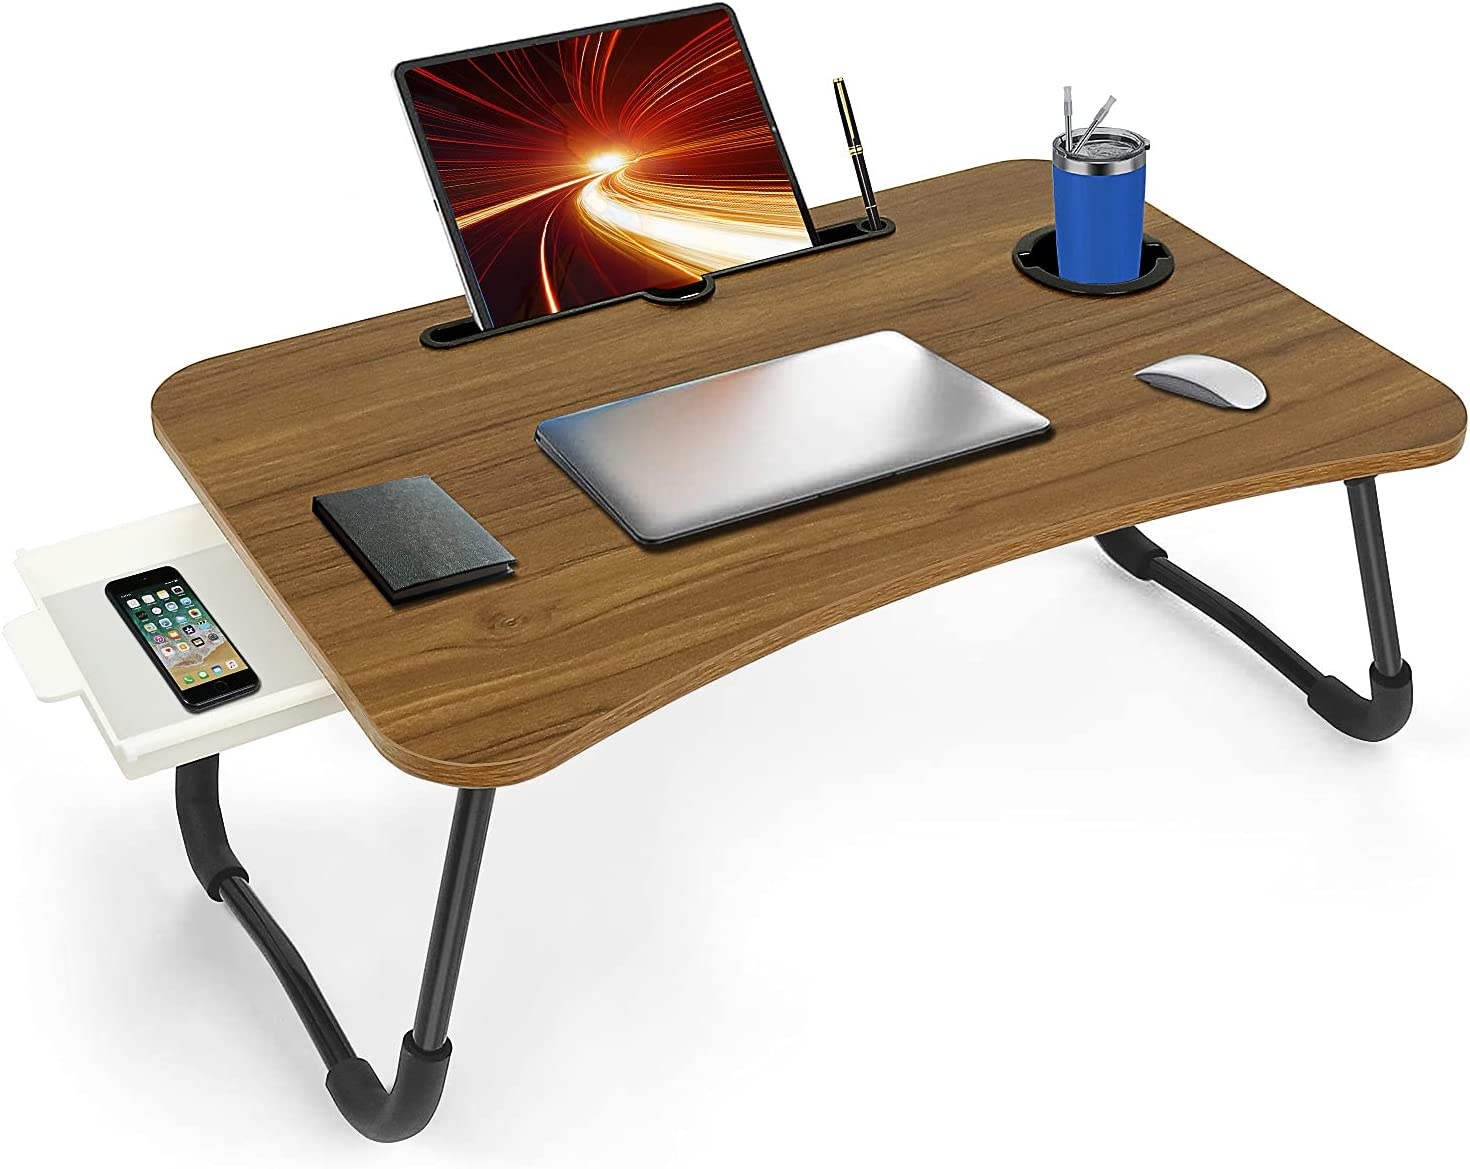 Laptop Desk for Bed,Fayquaze Foldable Laptop Bed Tray Table with Storage Drawer and Cup Holder,Lap Desk Laptop Desk Stand Laptop Table Serving Tray for Eating, Reading and Working on Bed Couch Sofa